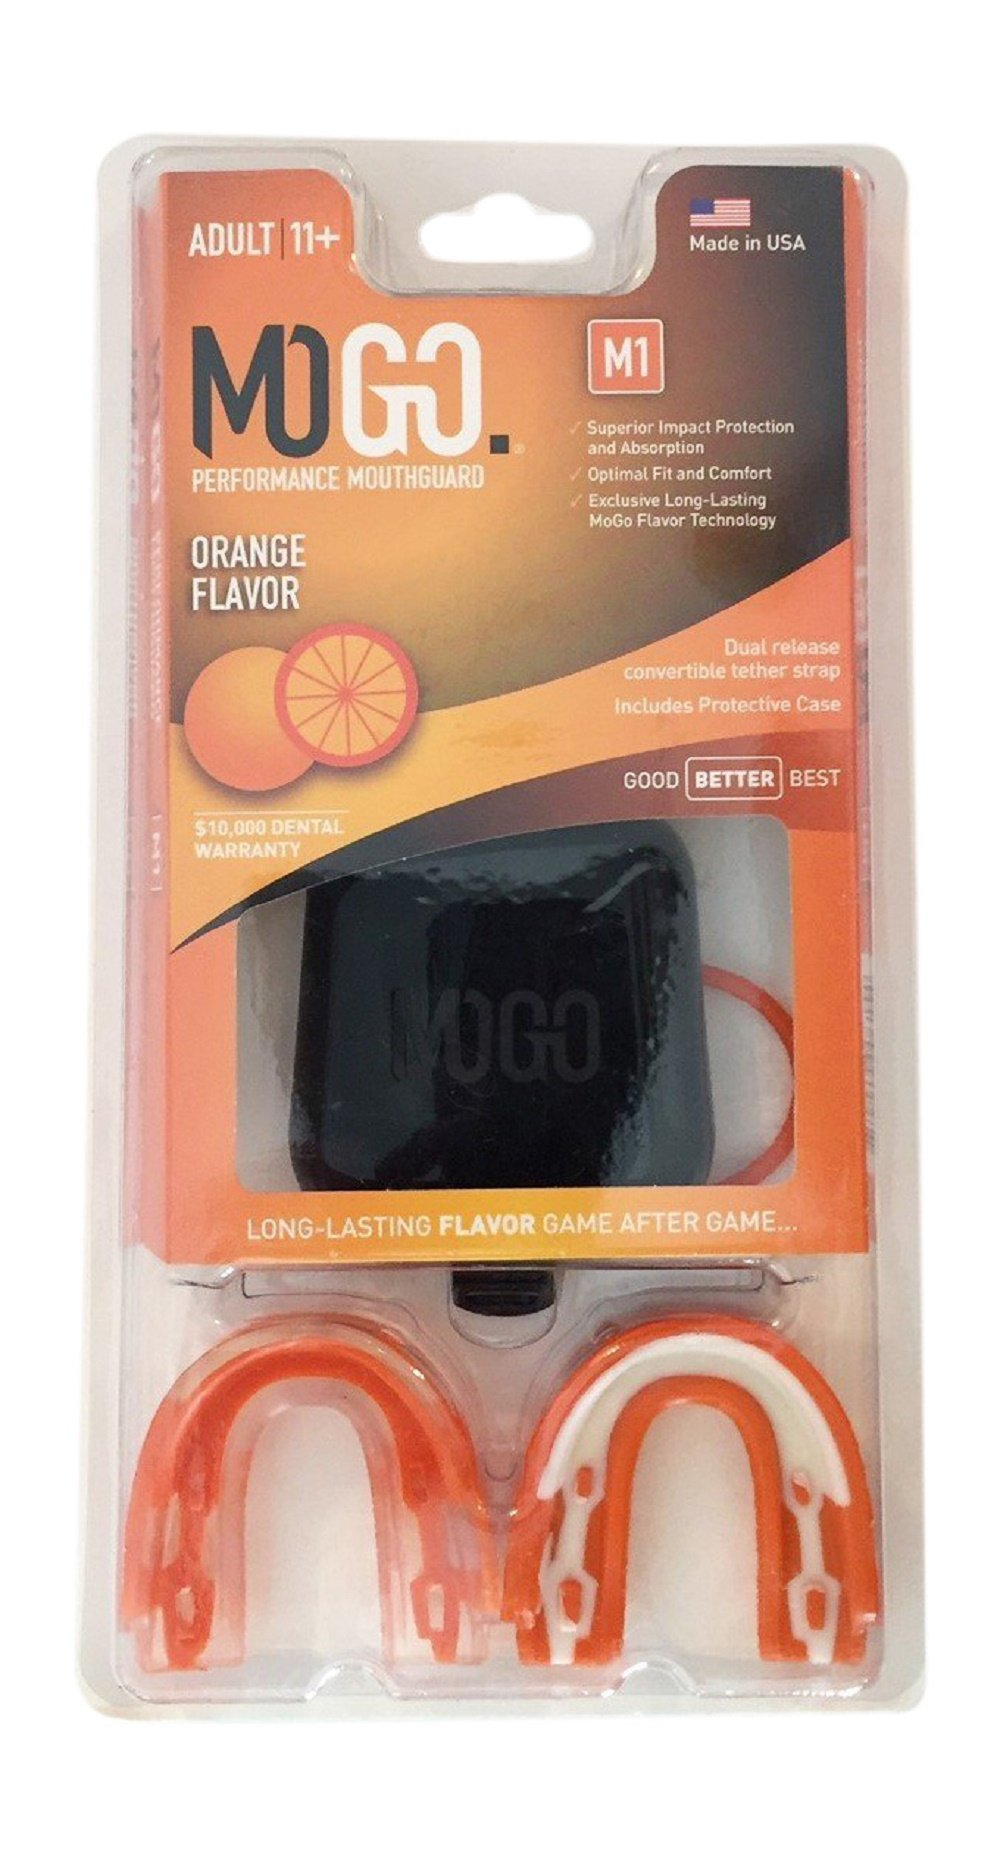 MOGO. Flavored 2 Pack Mouth Guards - Adult Sports Mouthguard for Ages 11 and Up - Mouthpiece for MMA, Football and Lacrosse - Tether Strap, Fitting Instructions and Carry Case (Orange) by MOGO. (Image #1)